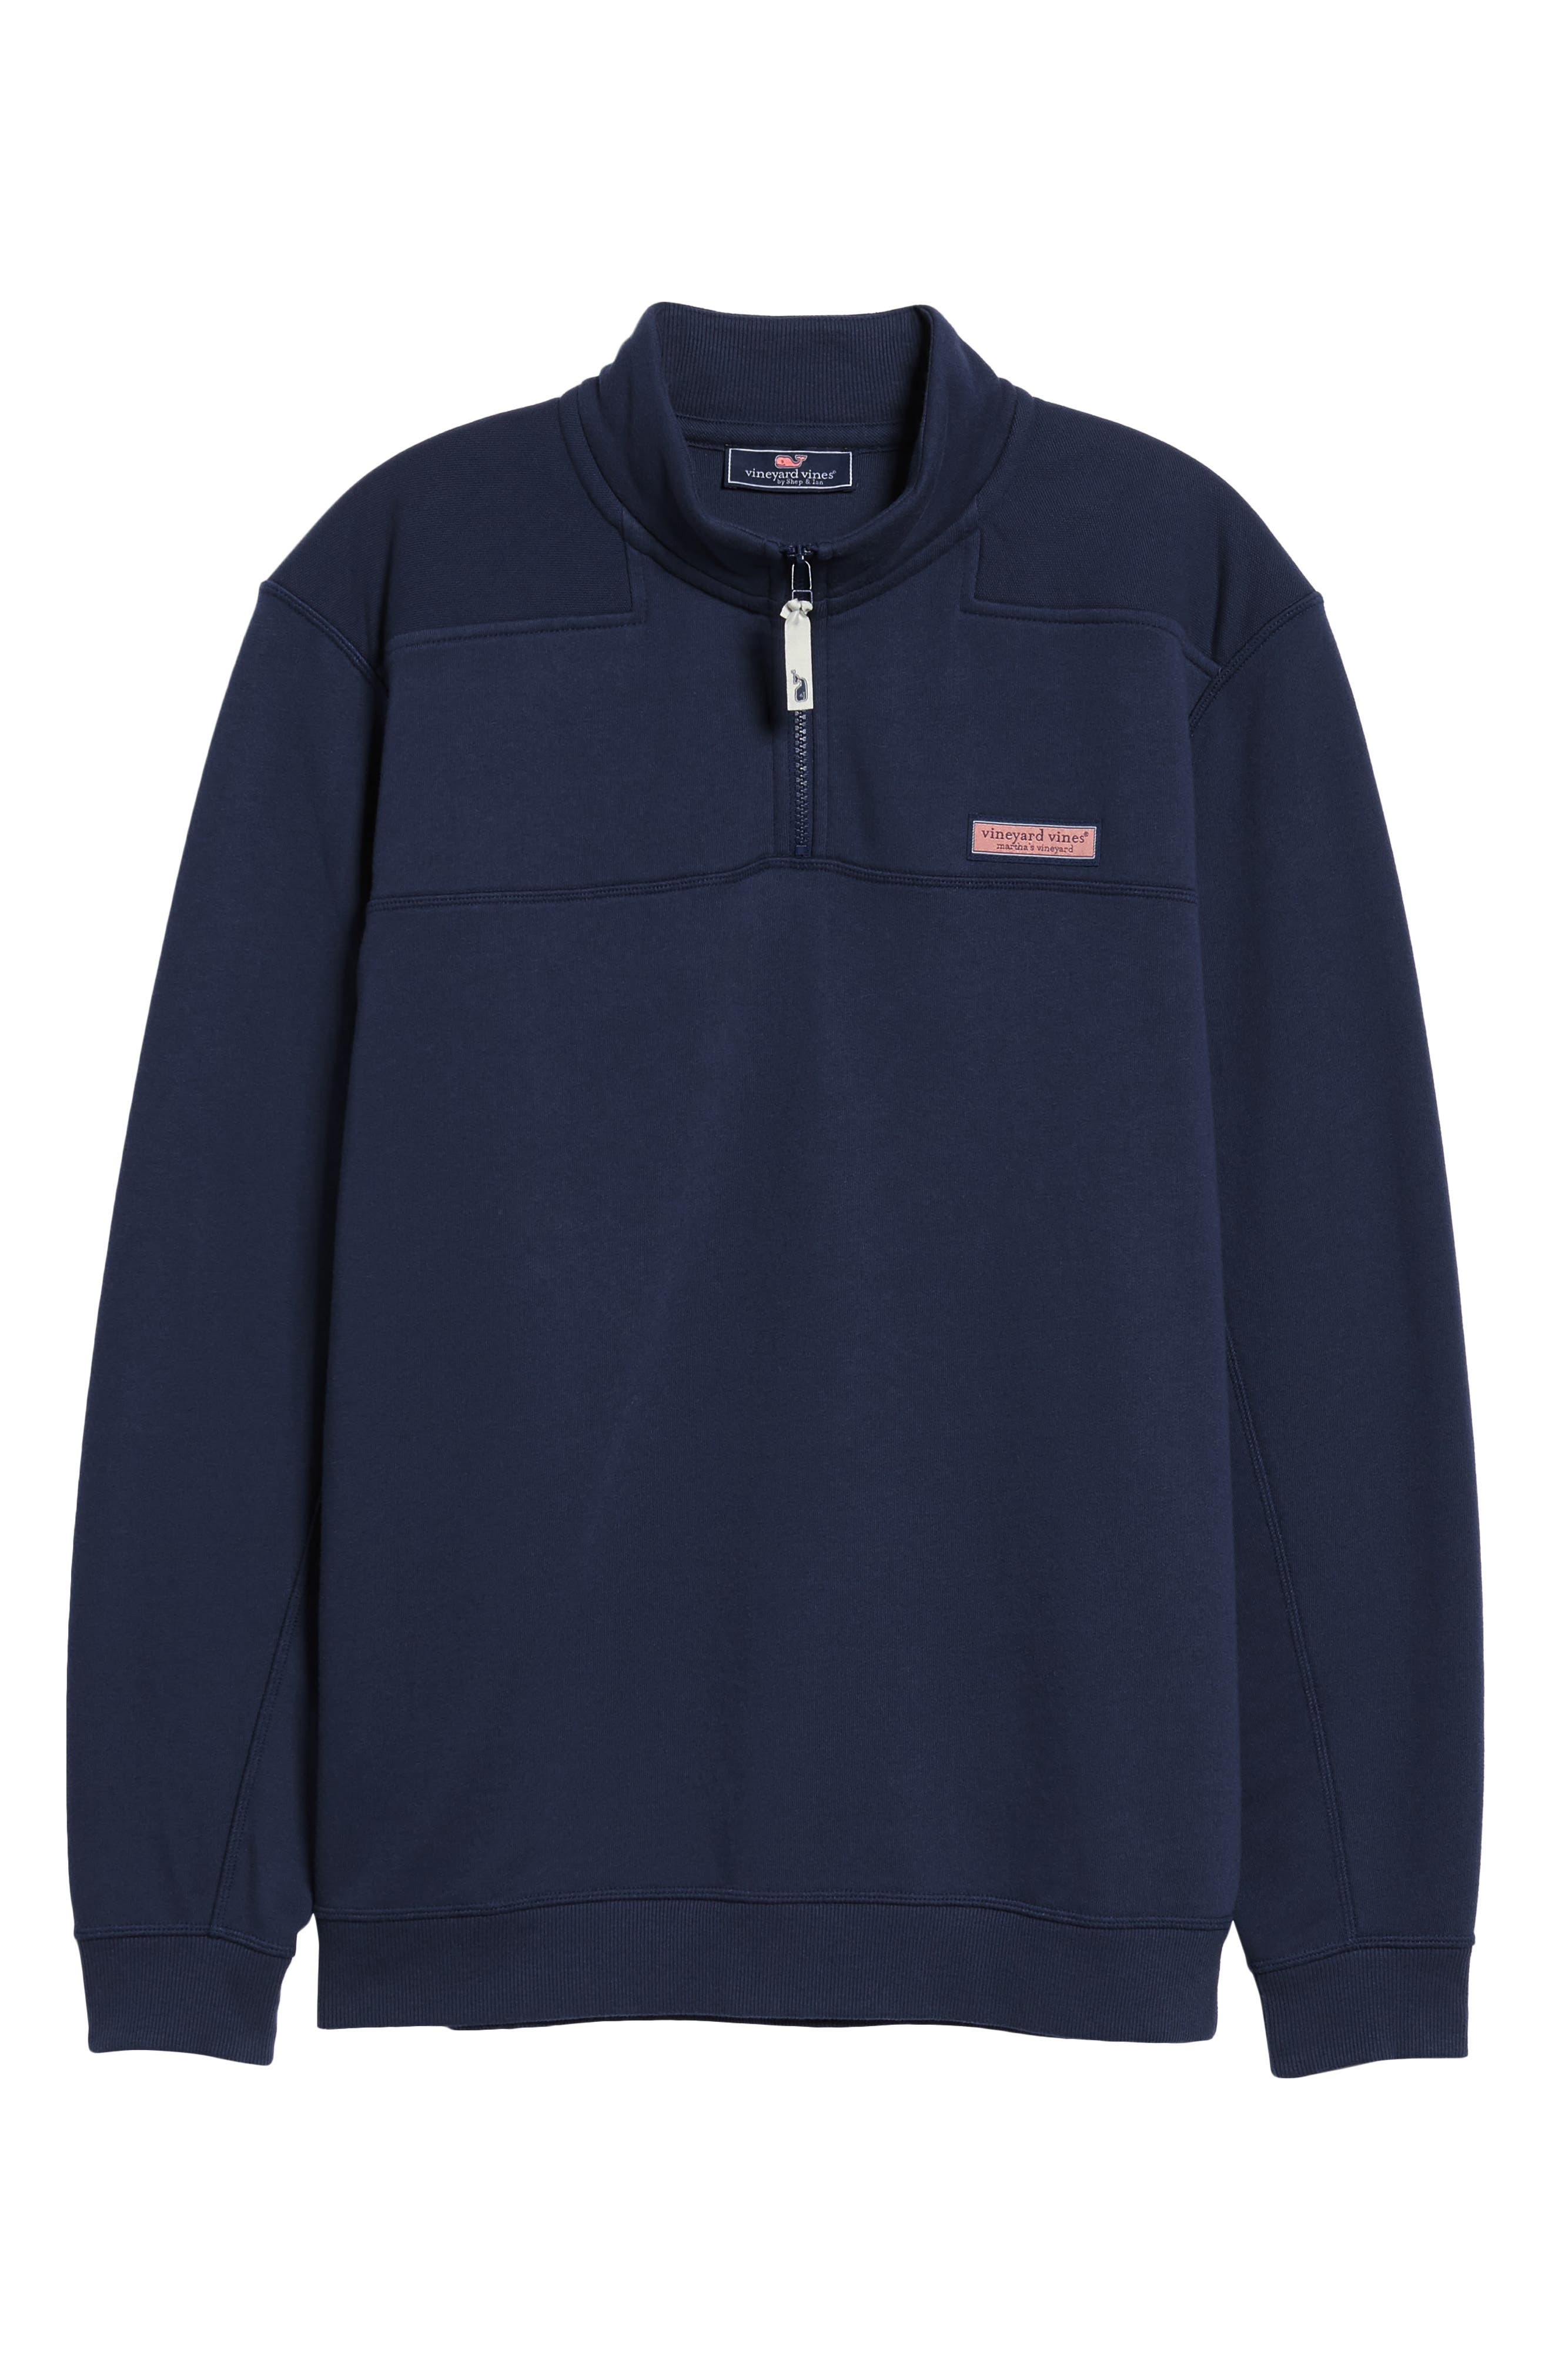 VINEYARD VINES, Collegiate Half Zip Pullover, Alternate thumbnail 6, color, VINEYARD NAVY